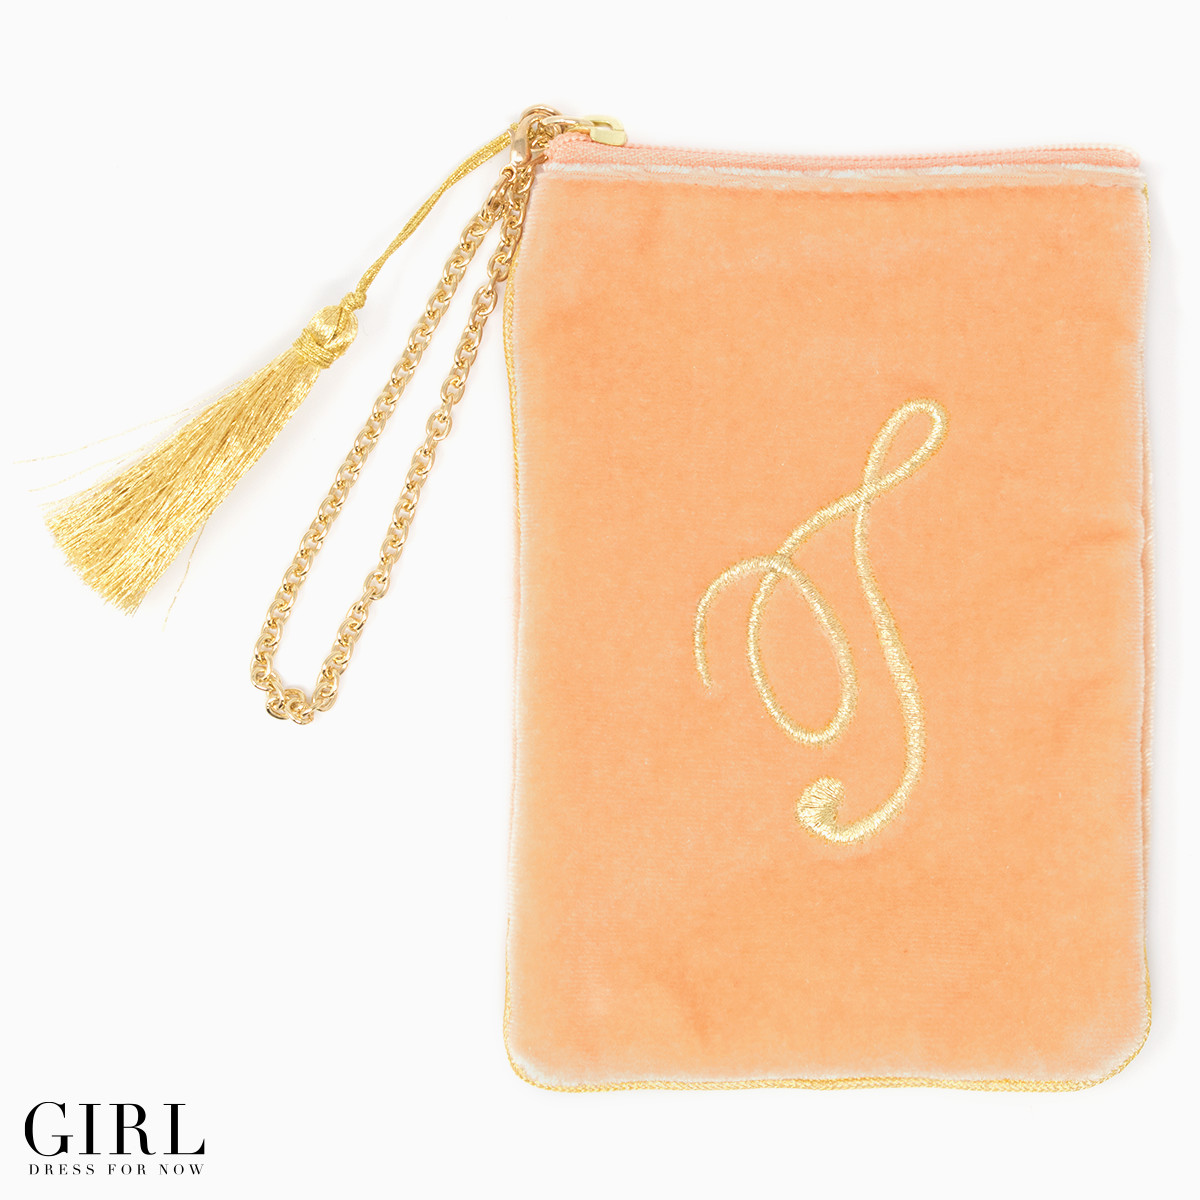 50% Off!! Smart phone or digital camera to cute cute initials porch wristlet velour cosmetic pouch wristlet pouch gold embroidered initials porch cigarette case Smartphone mail order mail order 10P13oct13_b